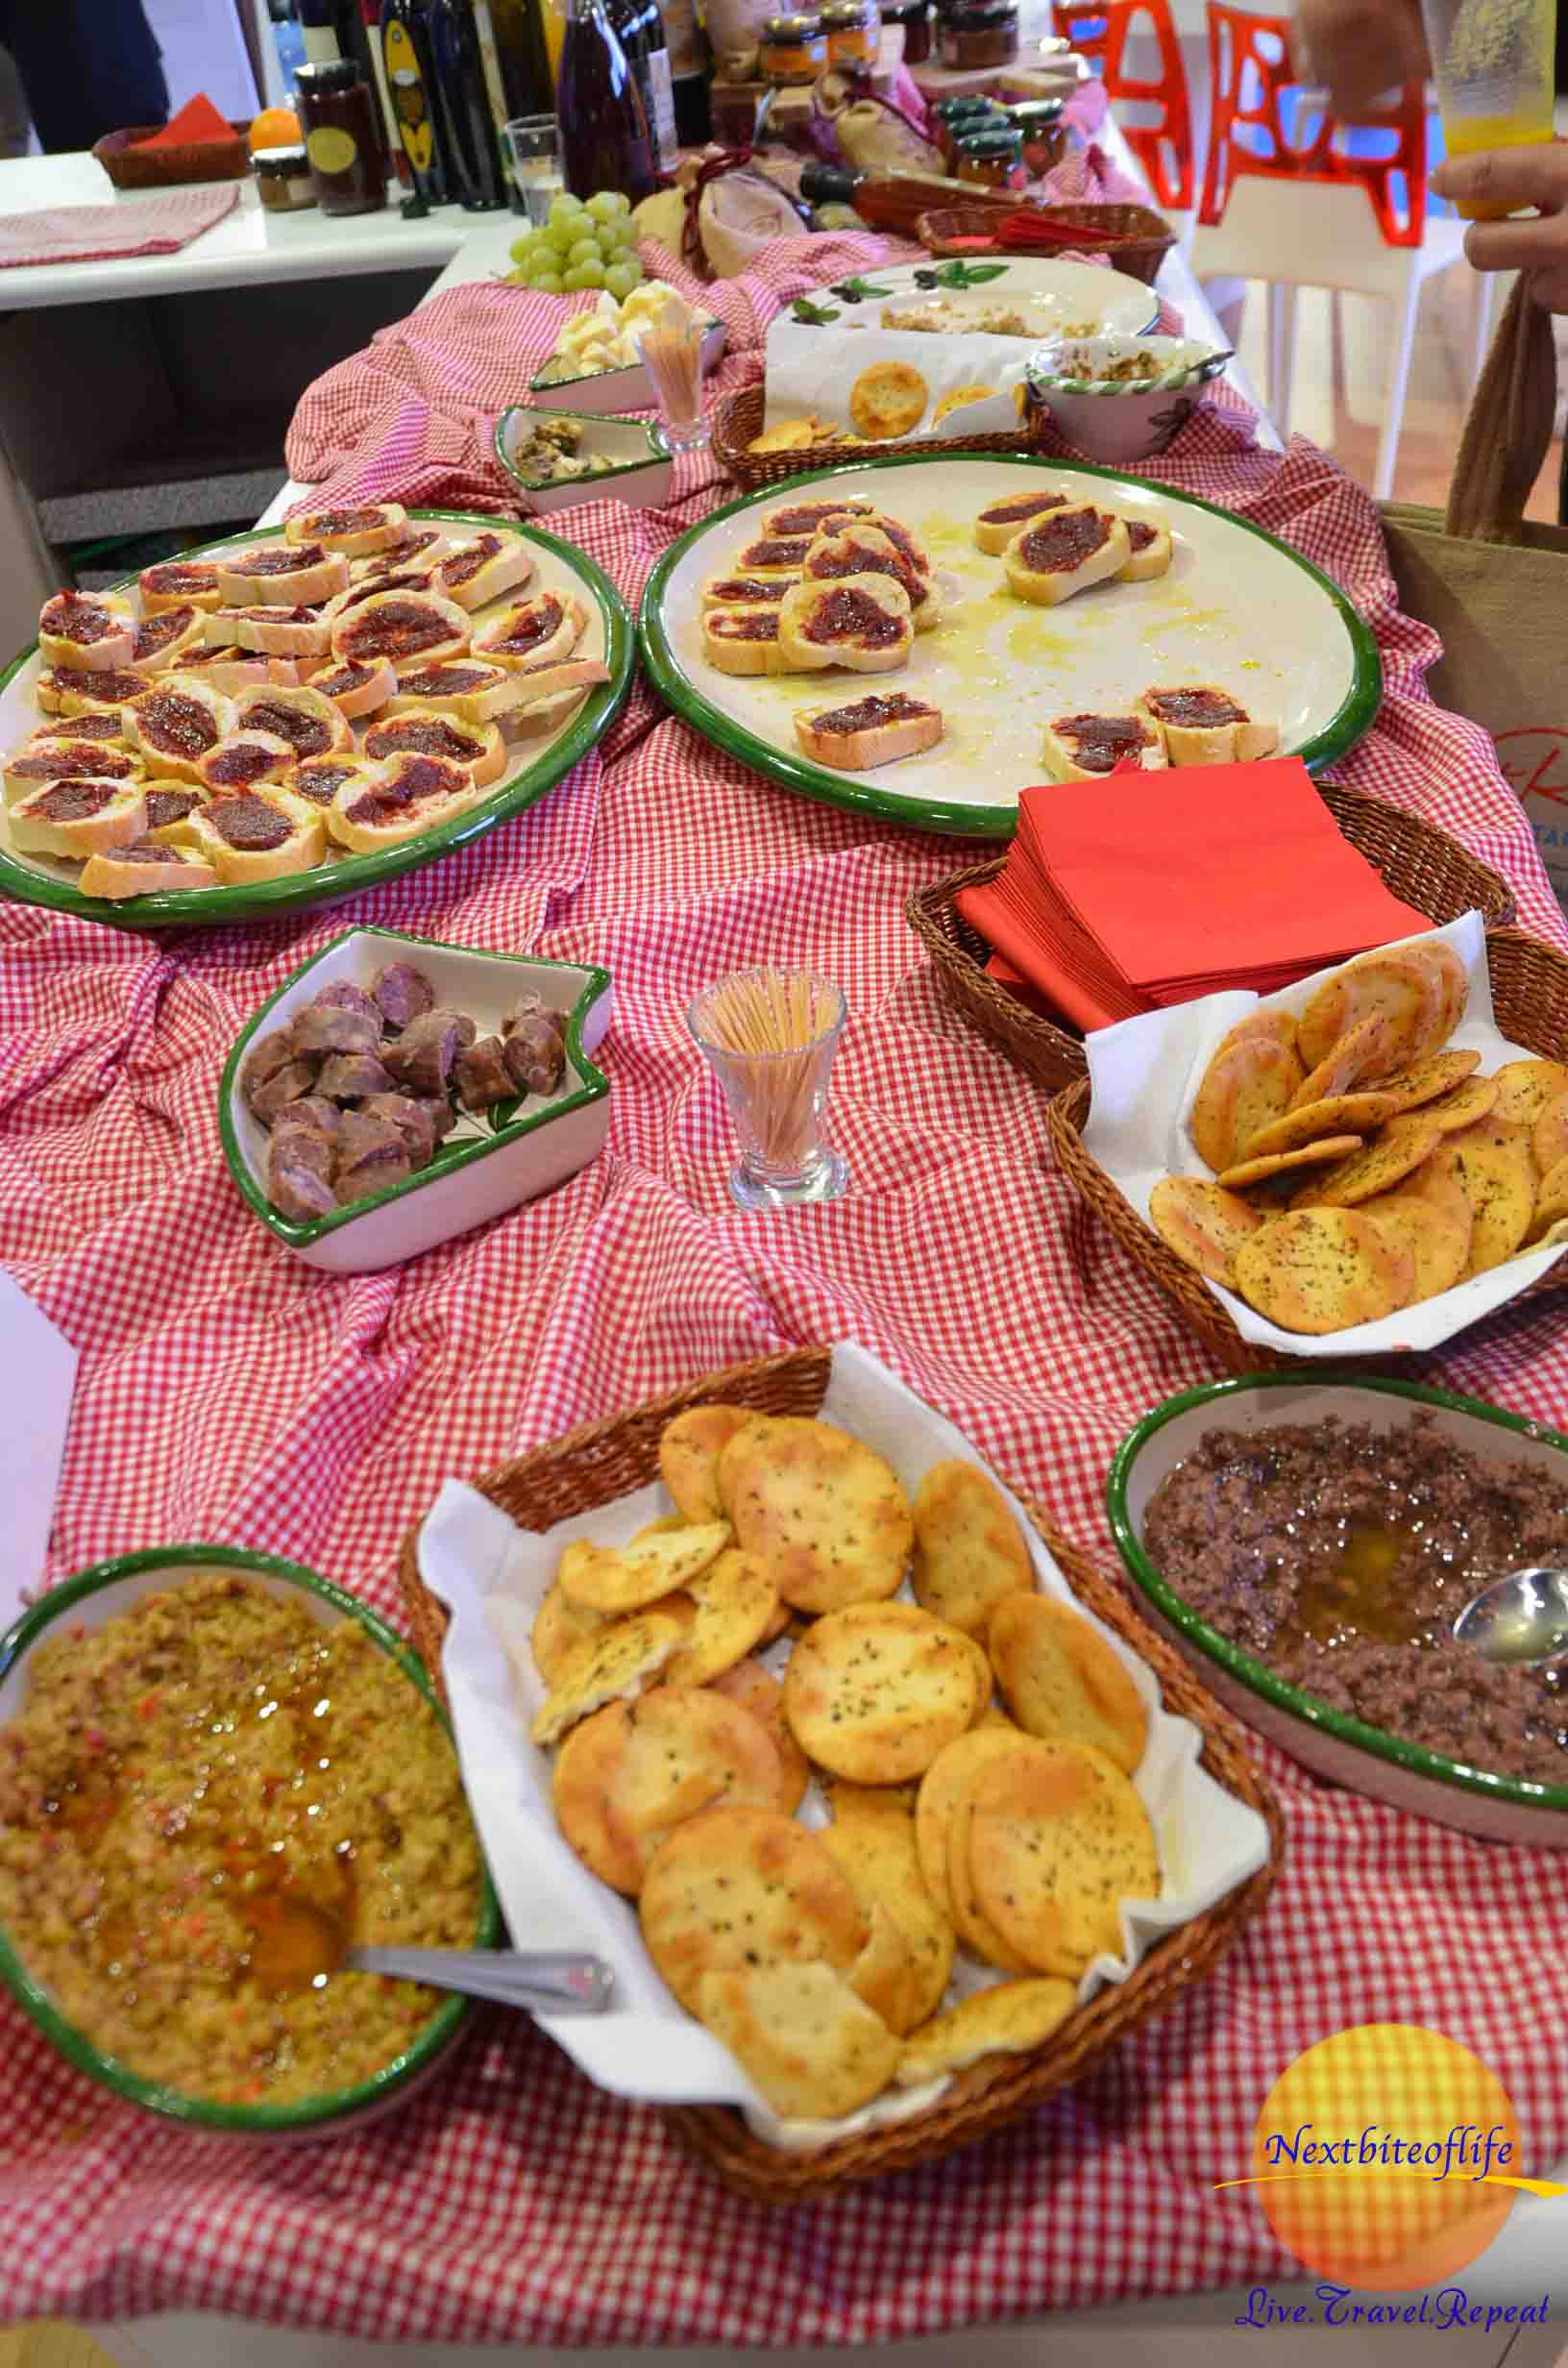 A Maltese spread! We sampled and had fun reminiscing about our year and half on the island.